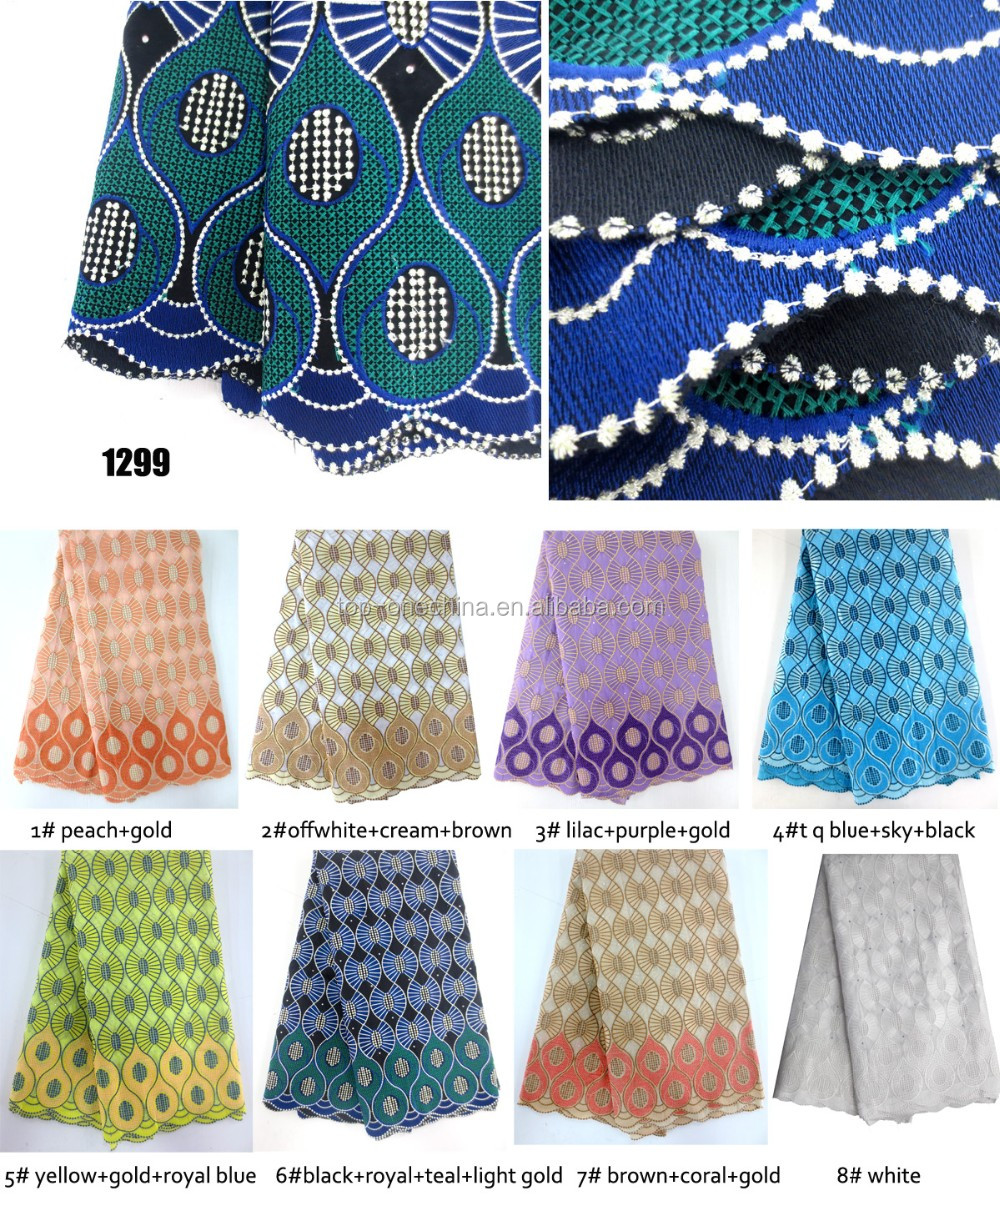 Bulk cotton embroidery nigeria lace fabric high quality